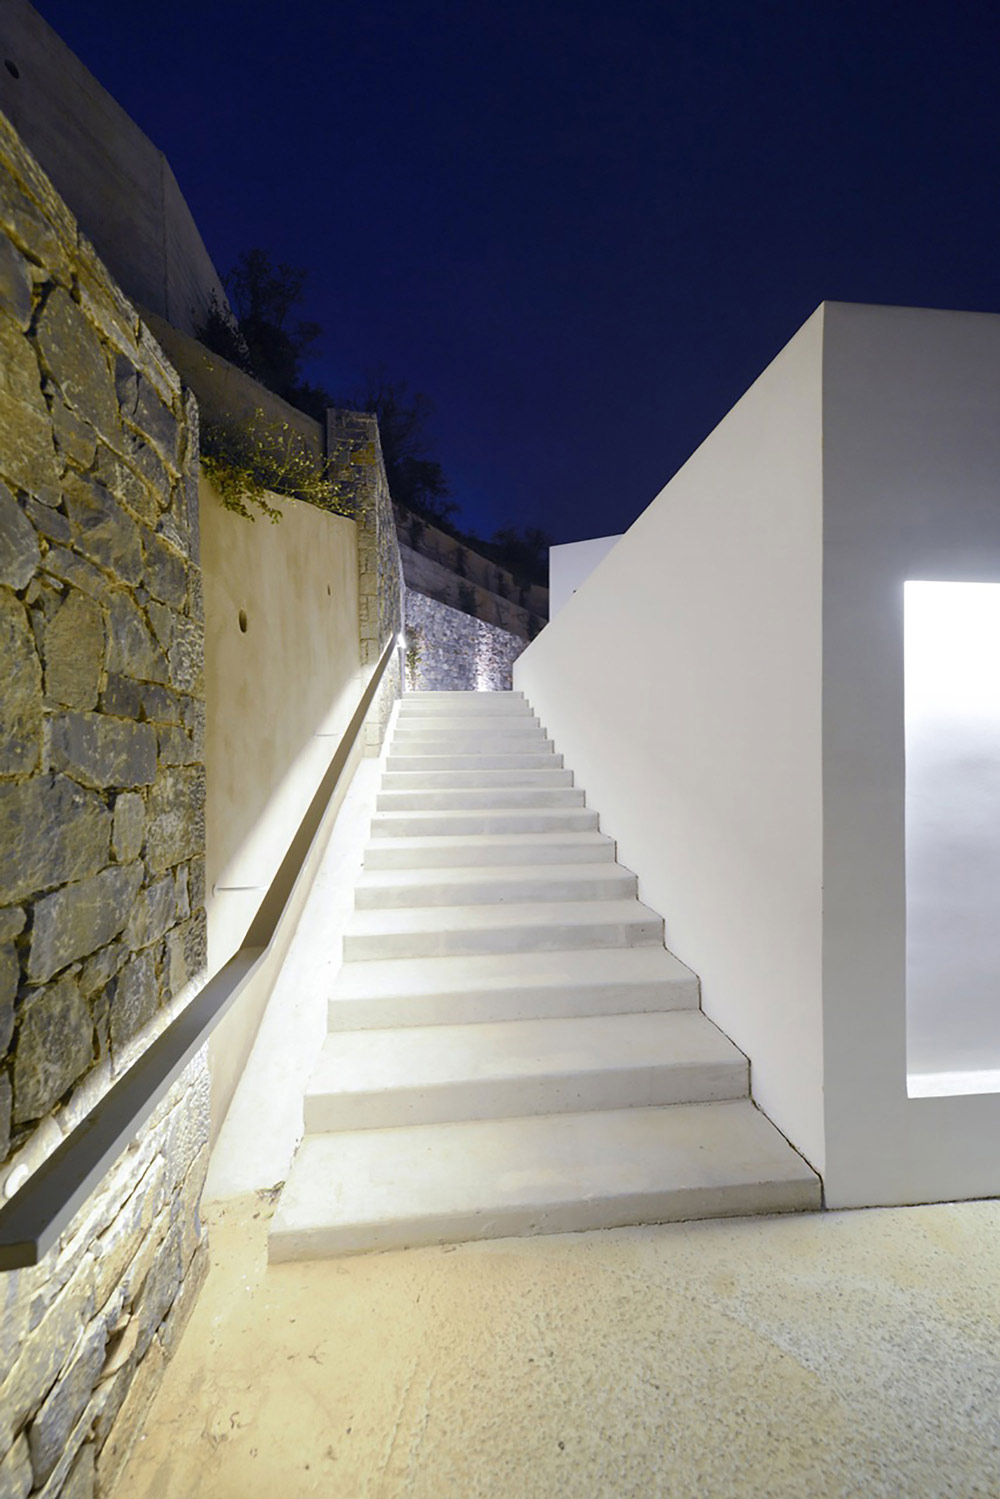 Outdoor stairs, lighting